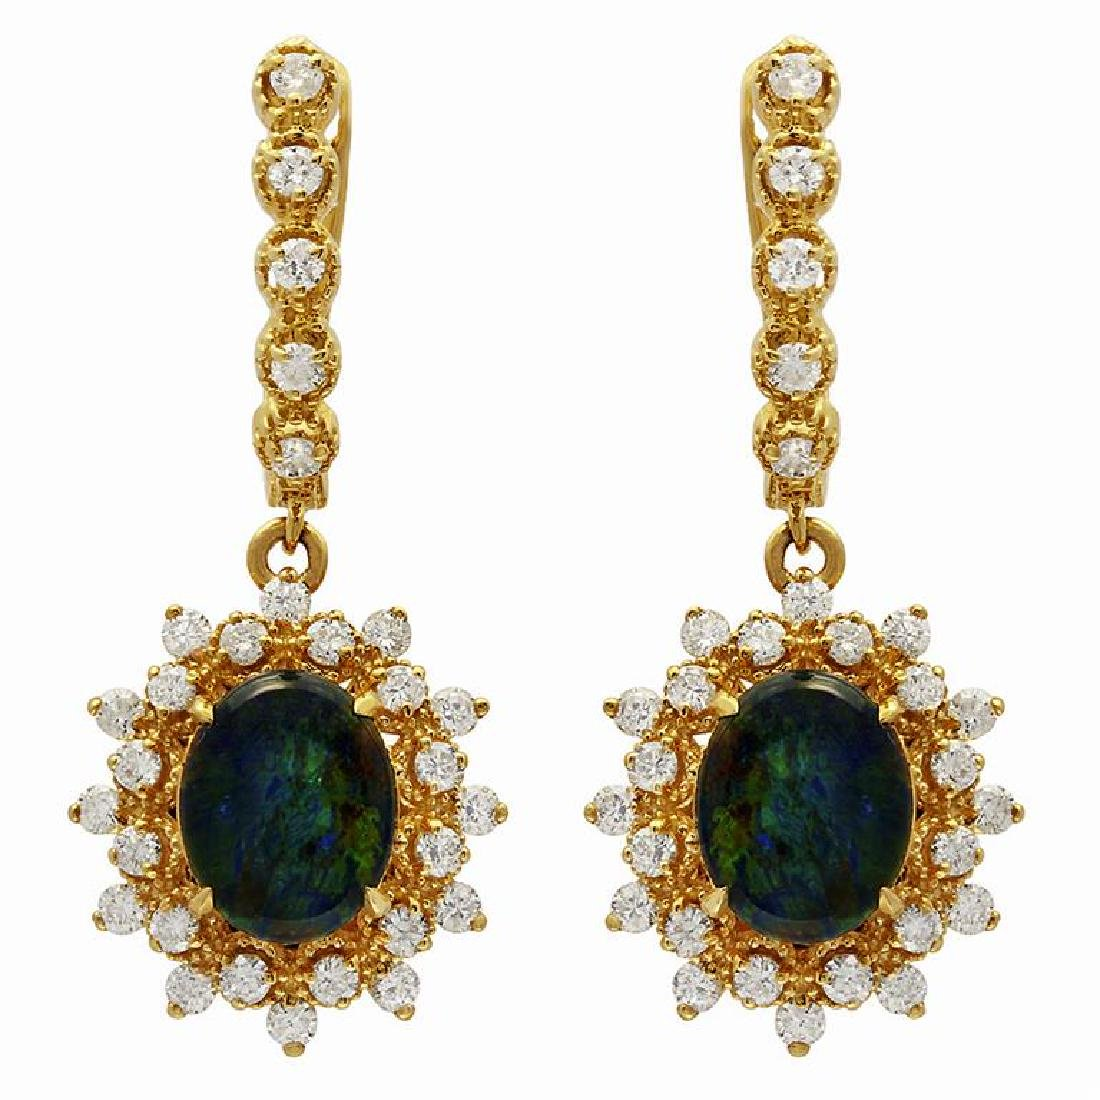 14k Yellow Gold 3.65ct Opal 1.59ct Diamond Earrings